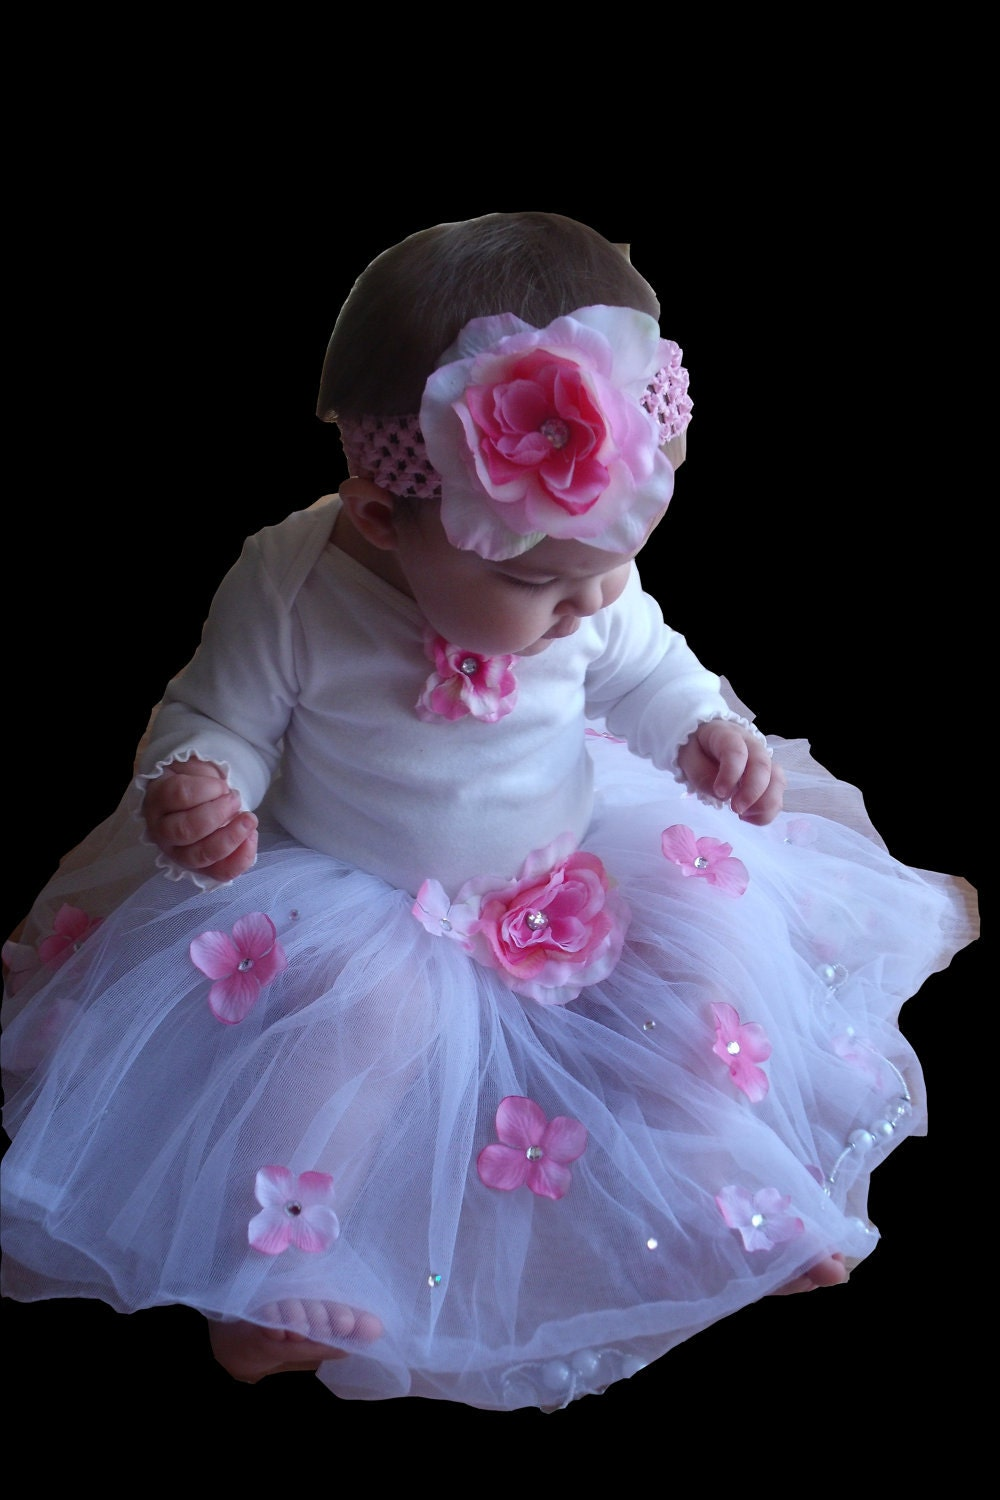 Luxury Rose Gold Birthday Outfit, rose gold girls birthday dress, baby girl tutu princess dress, 1st birthday tutu dress outfit, infant girl daisyboutiqueGB. 5 out of 5 stars (35) $ Only 3 left Favorite Add to See similar items + More like this. Luxury Rose Gold Sequin Birthday Outfit, rose gold girls birthday dress, baby girl tutu.